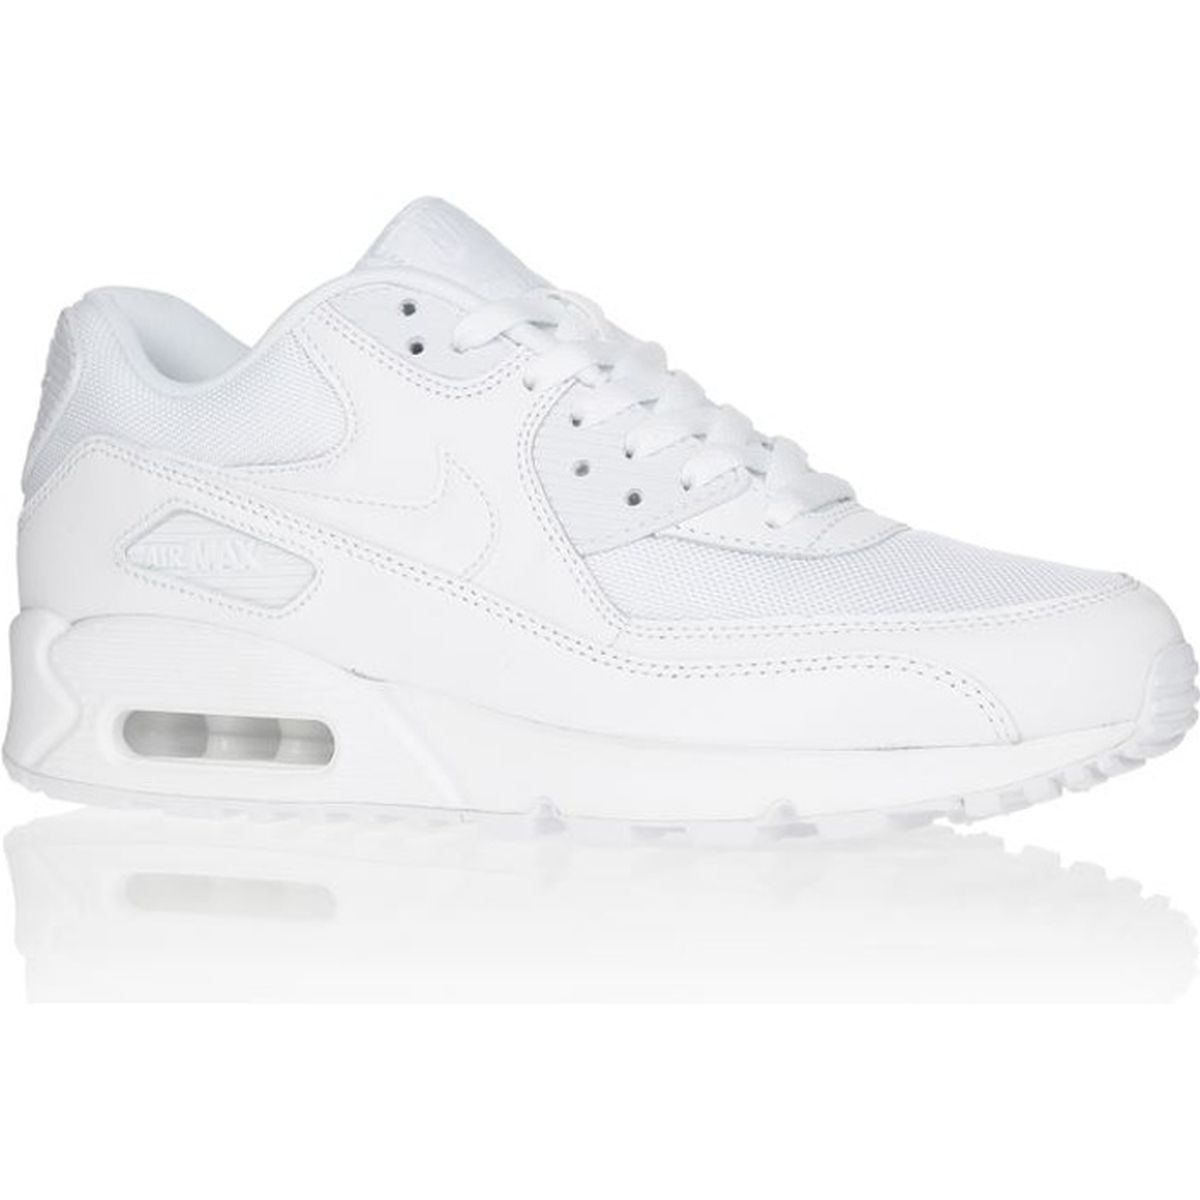 nike air max 90 cuir blanc. Black Bedroom Furniture Sets. Home Design Ideas